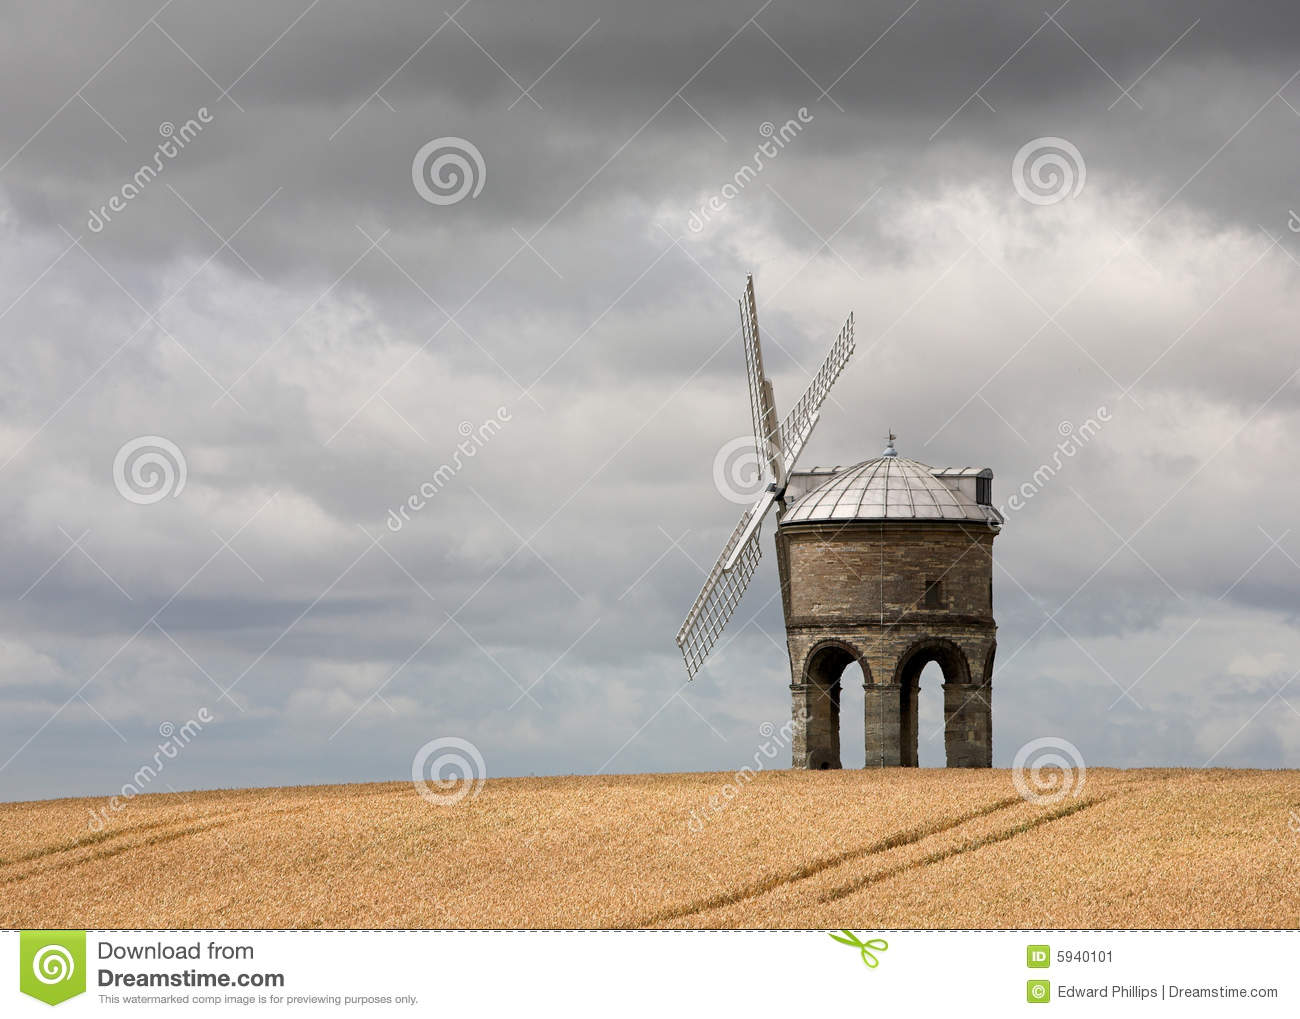 Windmill In A Wheat Field Stock Image - Image: 5940101